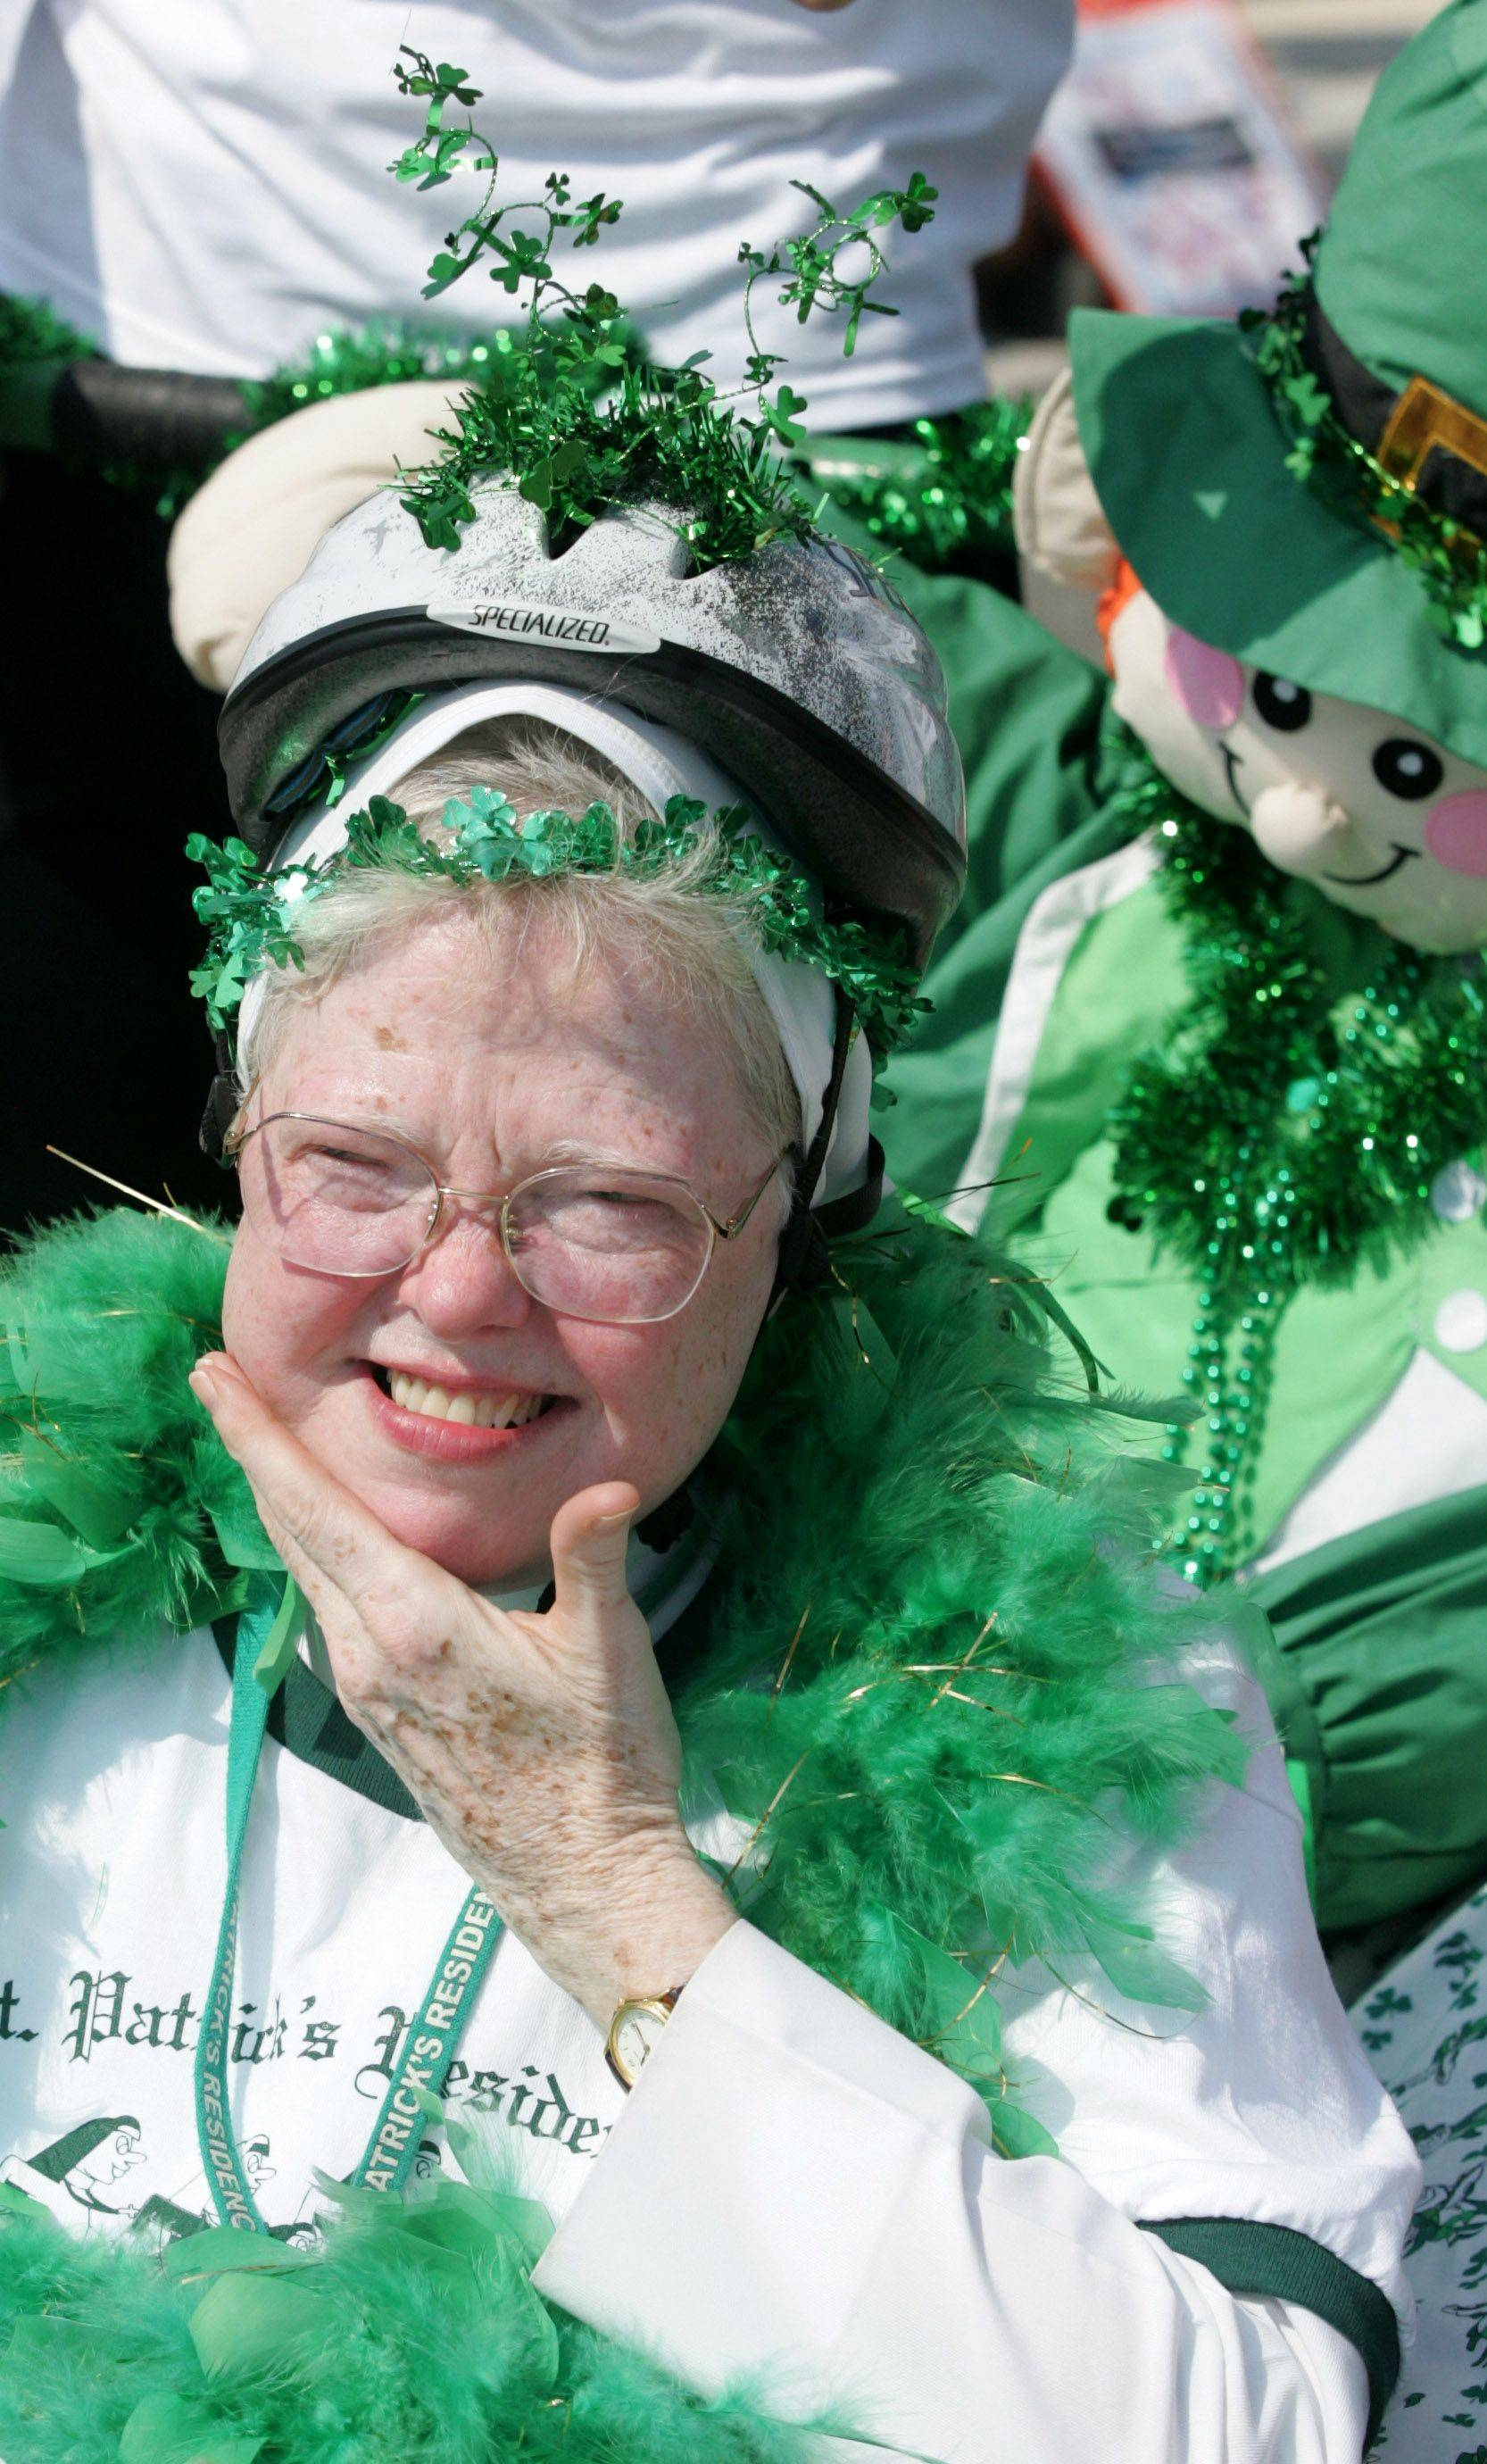 Sister Raphael Schmitz of the St. Patrick's Nuns on the Run team wins the bed races at the Last Fling celebration in downtown Naperville.